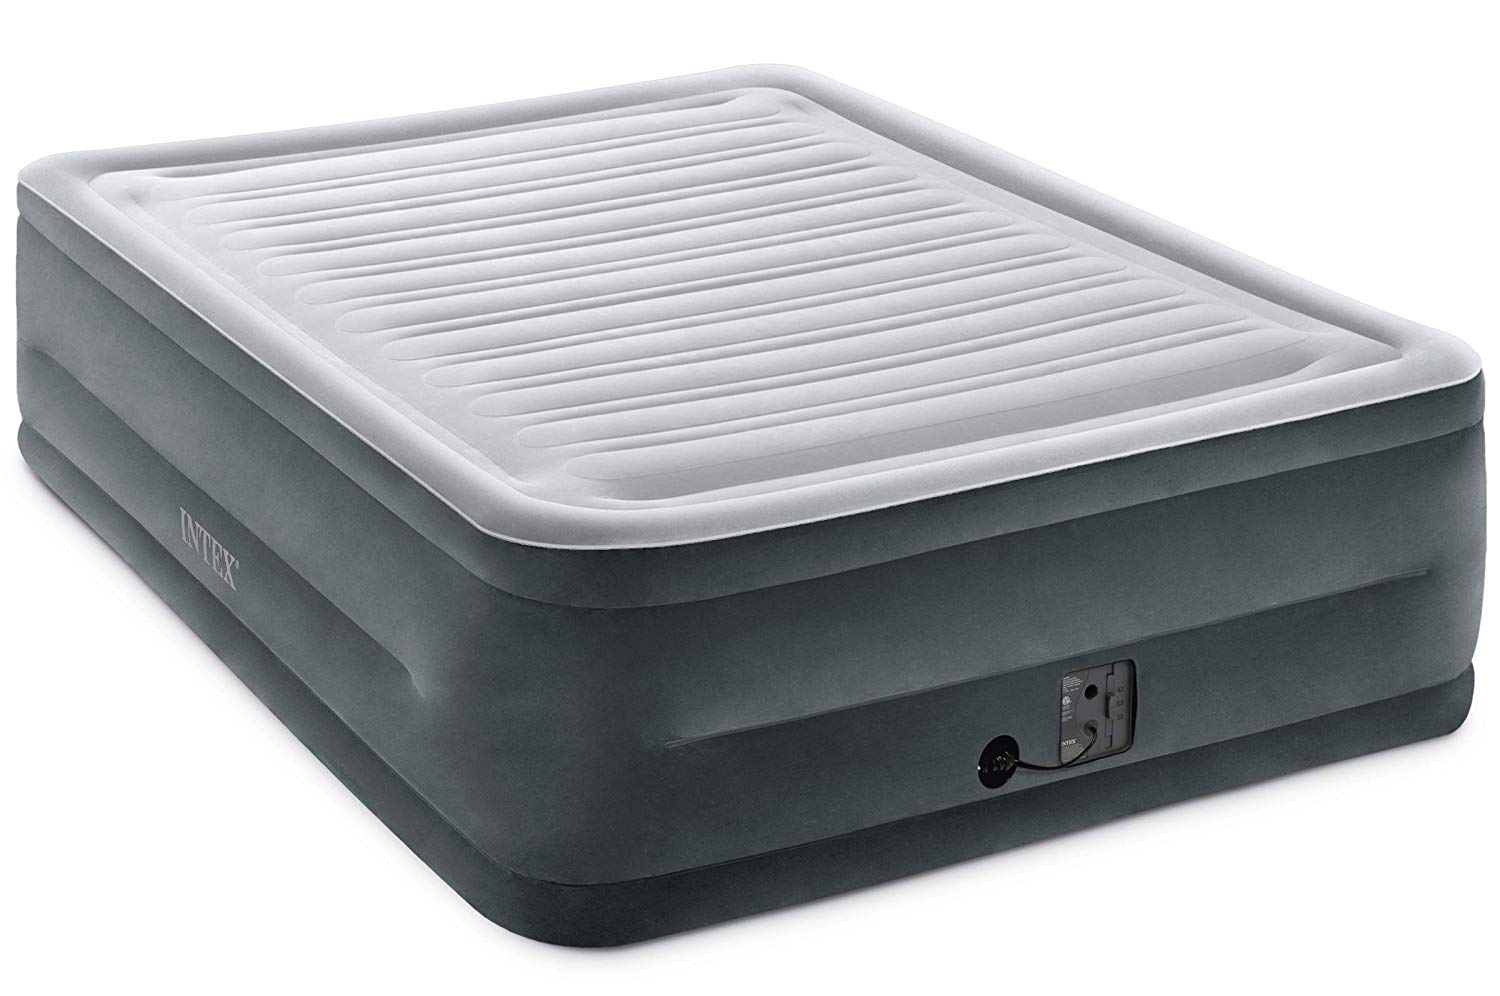 Intex Comfort Plush Elevated Dura-Beam Airbed with Internal Electric Pump, Bed Height 22 Inches, Queen